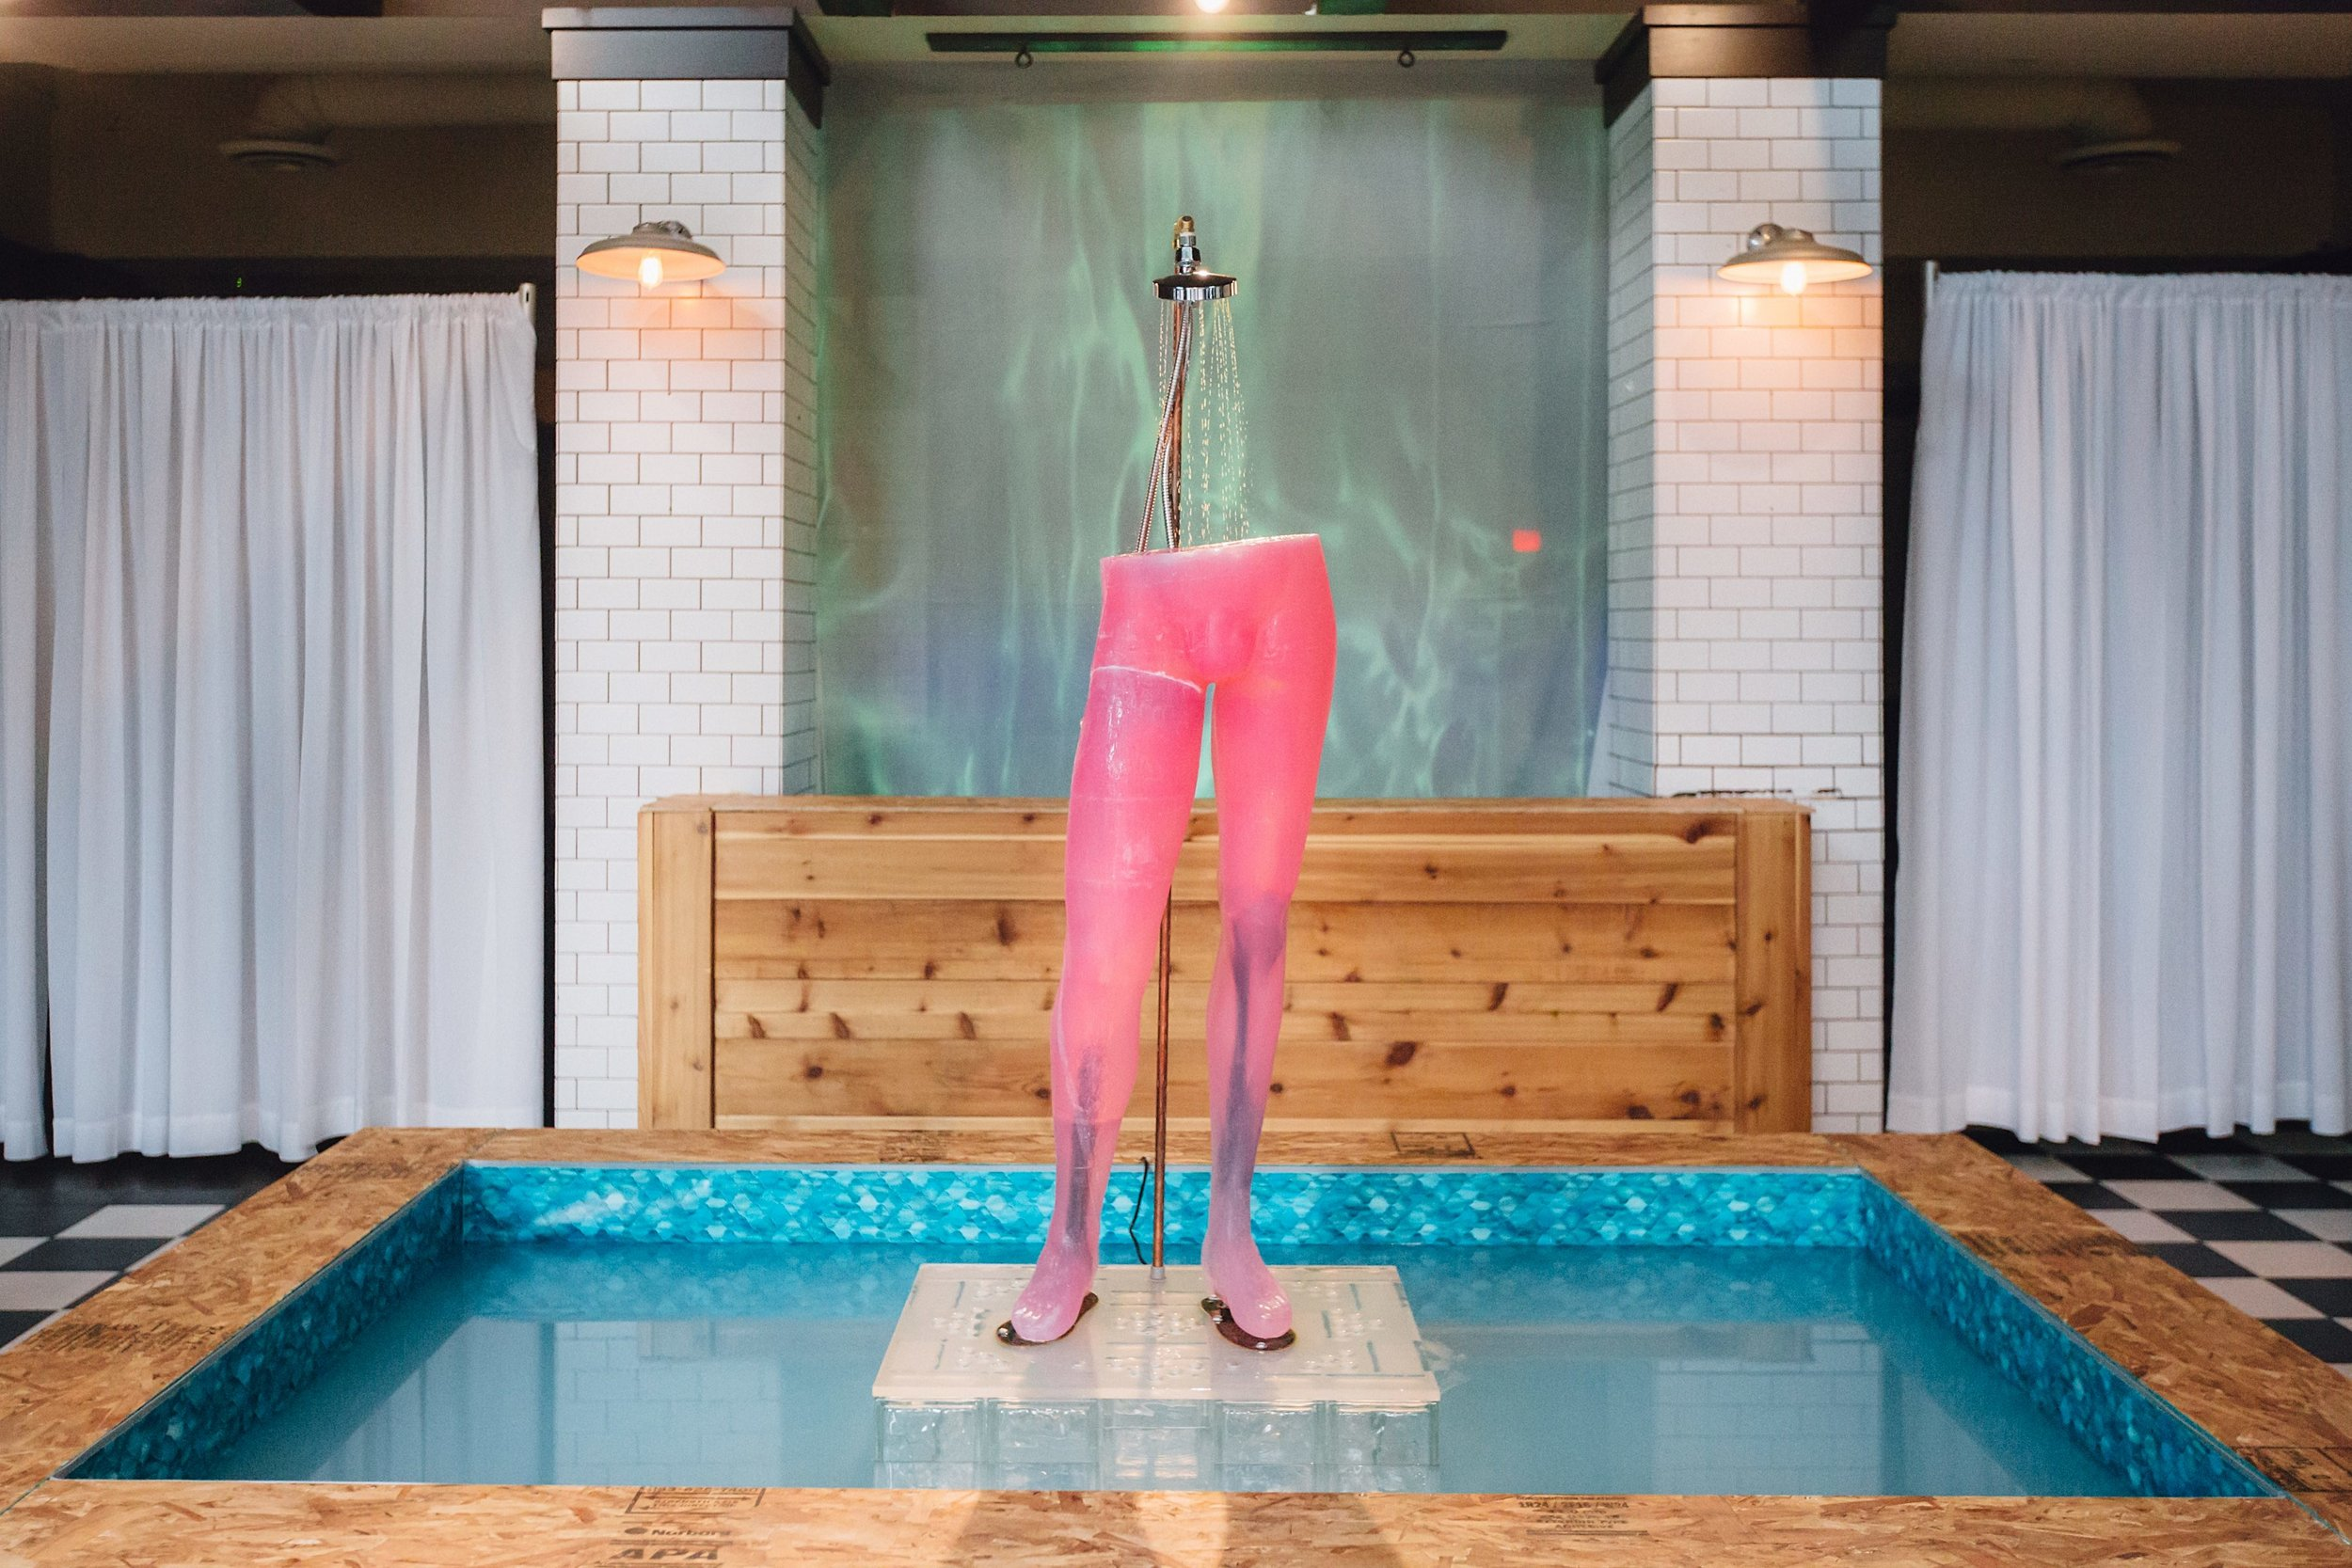 "David  central component of  PInk Champagne , 2018. [Working fountain] tinted glycerine, swimming pool vinyl, water, chip board, glass, acrylic, copper pipe and plumbing fixtures, steel, silicone, pump. 144x120x96"". Photo documentation by Diane and Mike Photography, and Keeghan Rouleau."